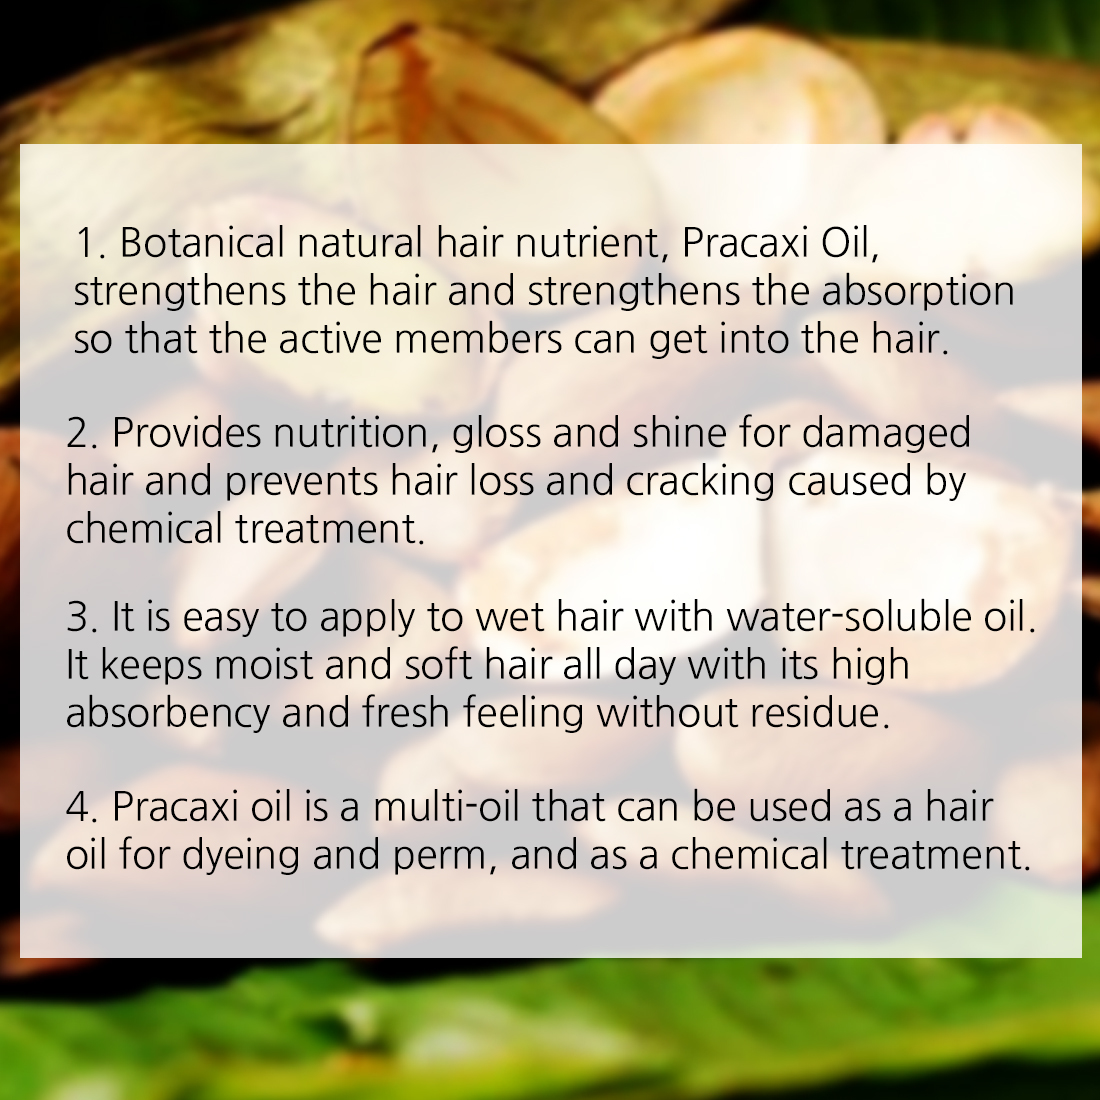 Details about MAKISAKI Pracaxi Hair Oil Natural Concentrate Hair Nutrition  + Styling Oil